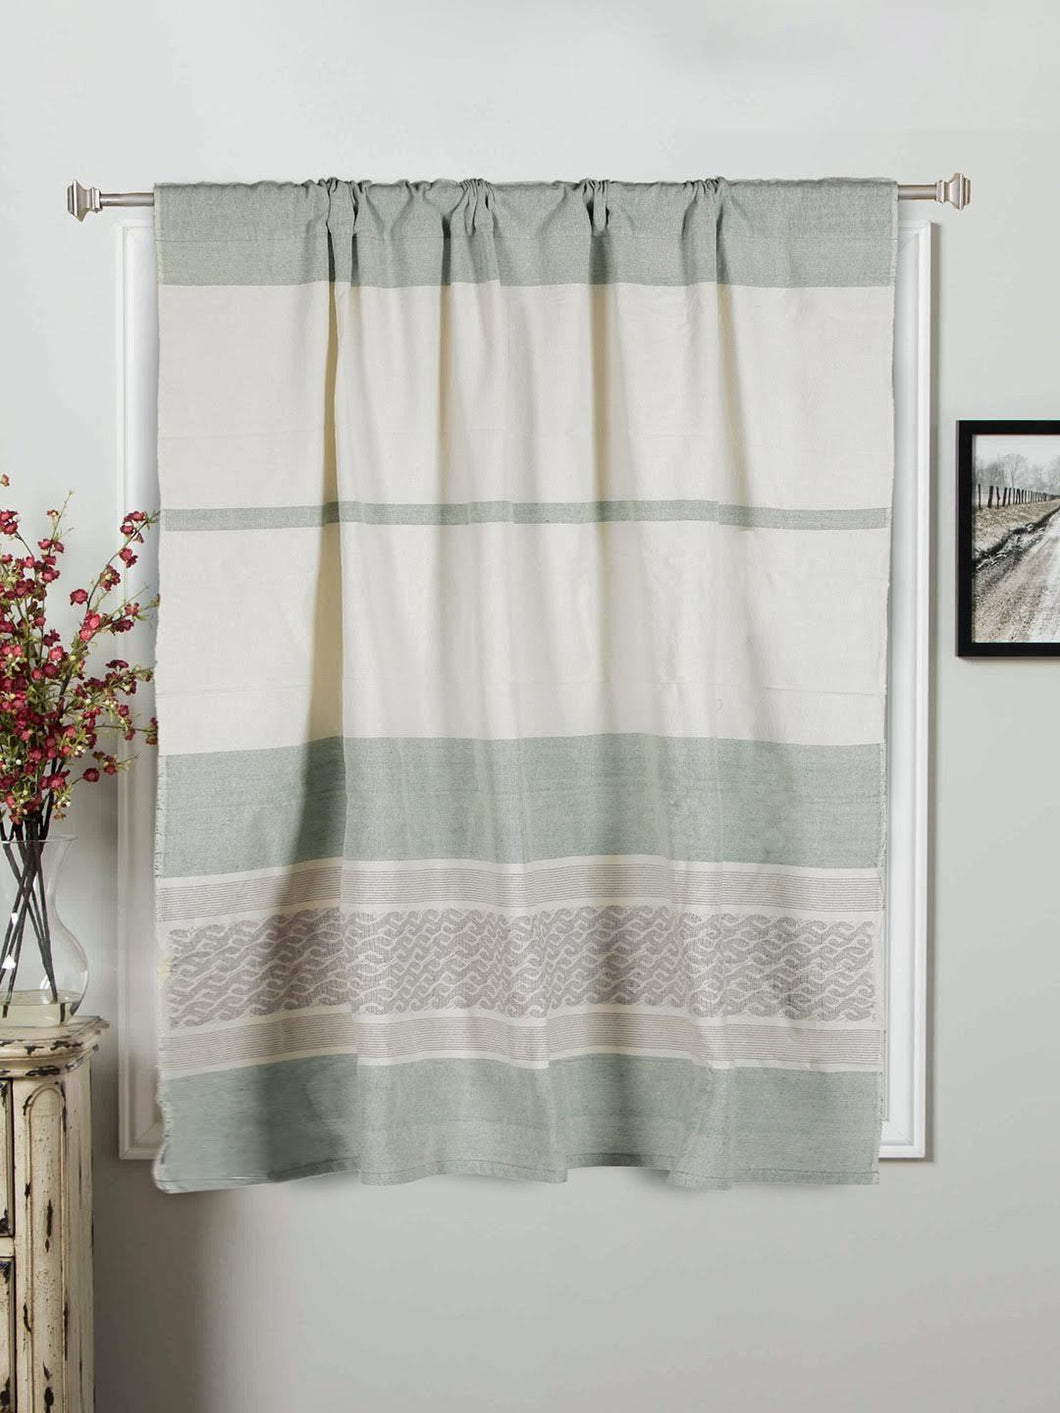 Handloom Cotton  Sage Green Rod Pocket Window Curtain - Arteastri